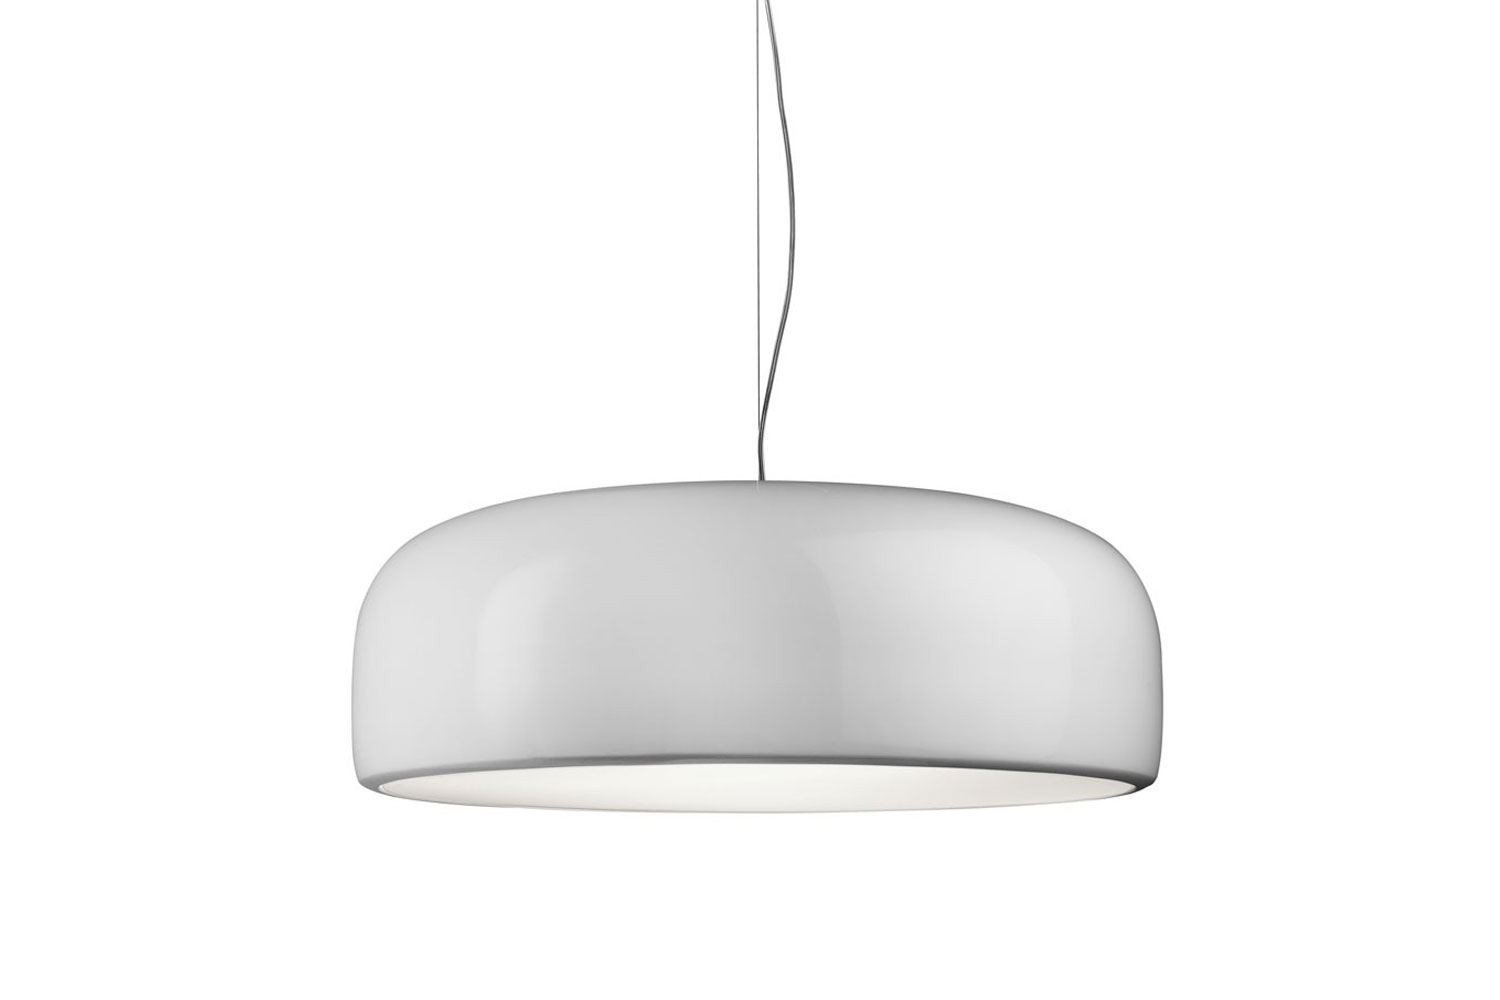 Plafoniera Flos Smithfield : Flos smithfield s hanglamp ray suspension lamp by in